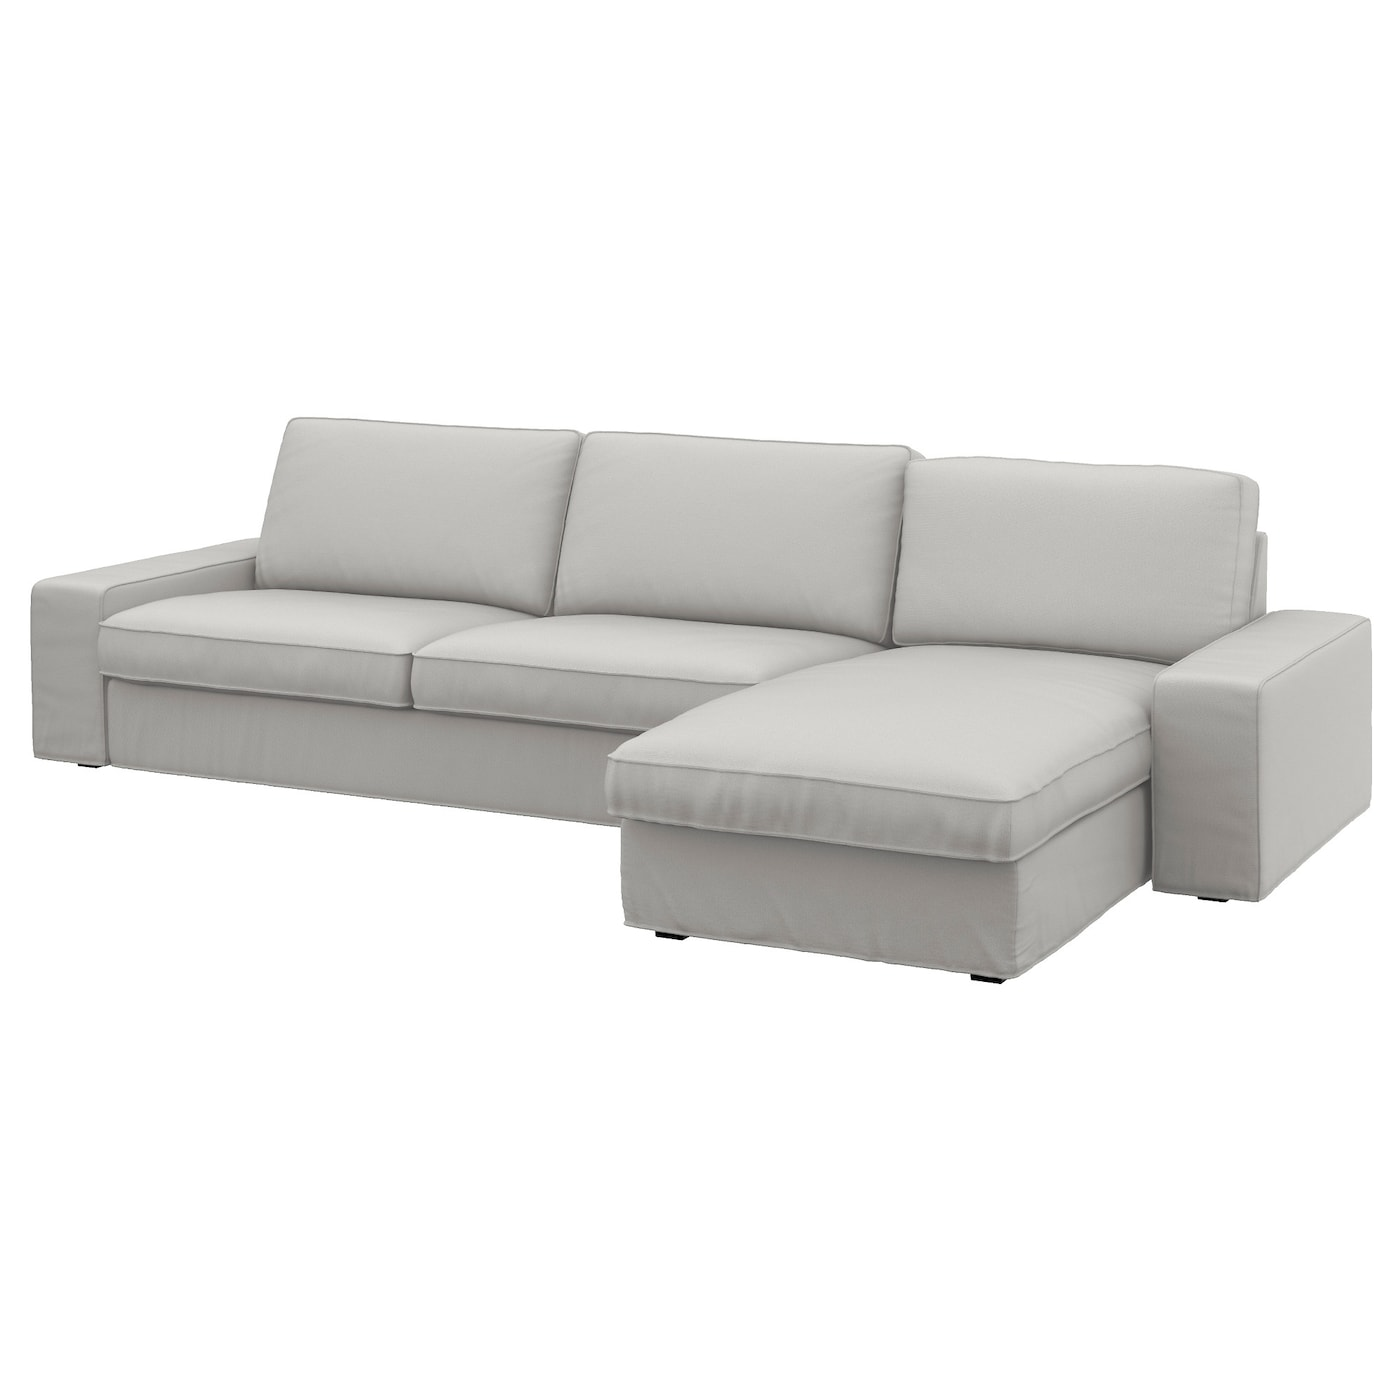 Kivik Three Seat Sofa And Chaise Longue Ramna Light Grey Ikea